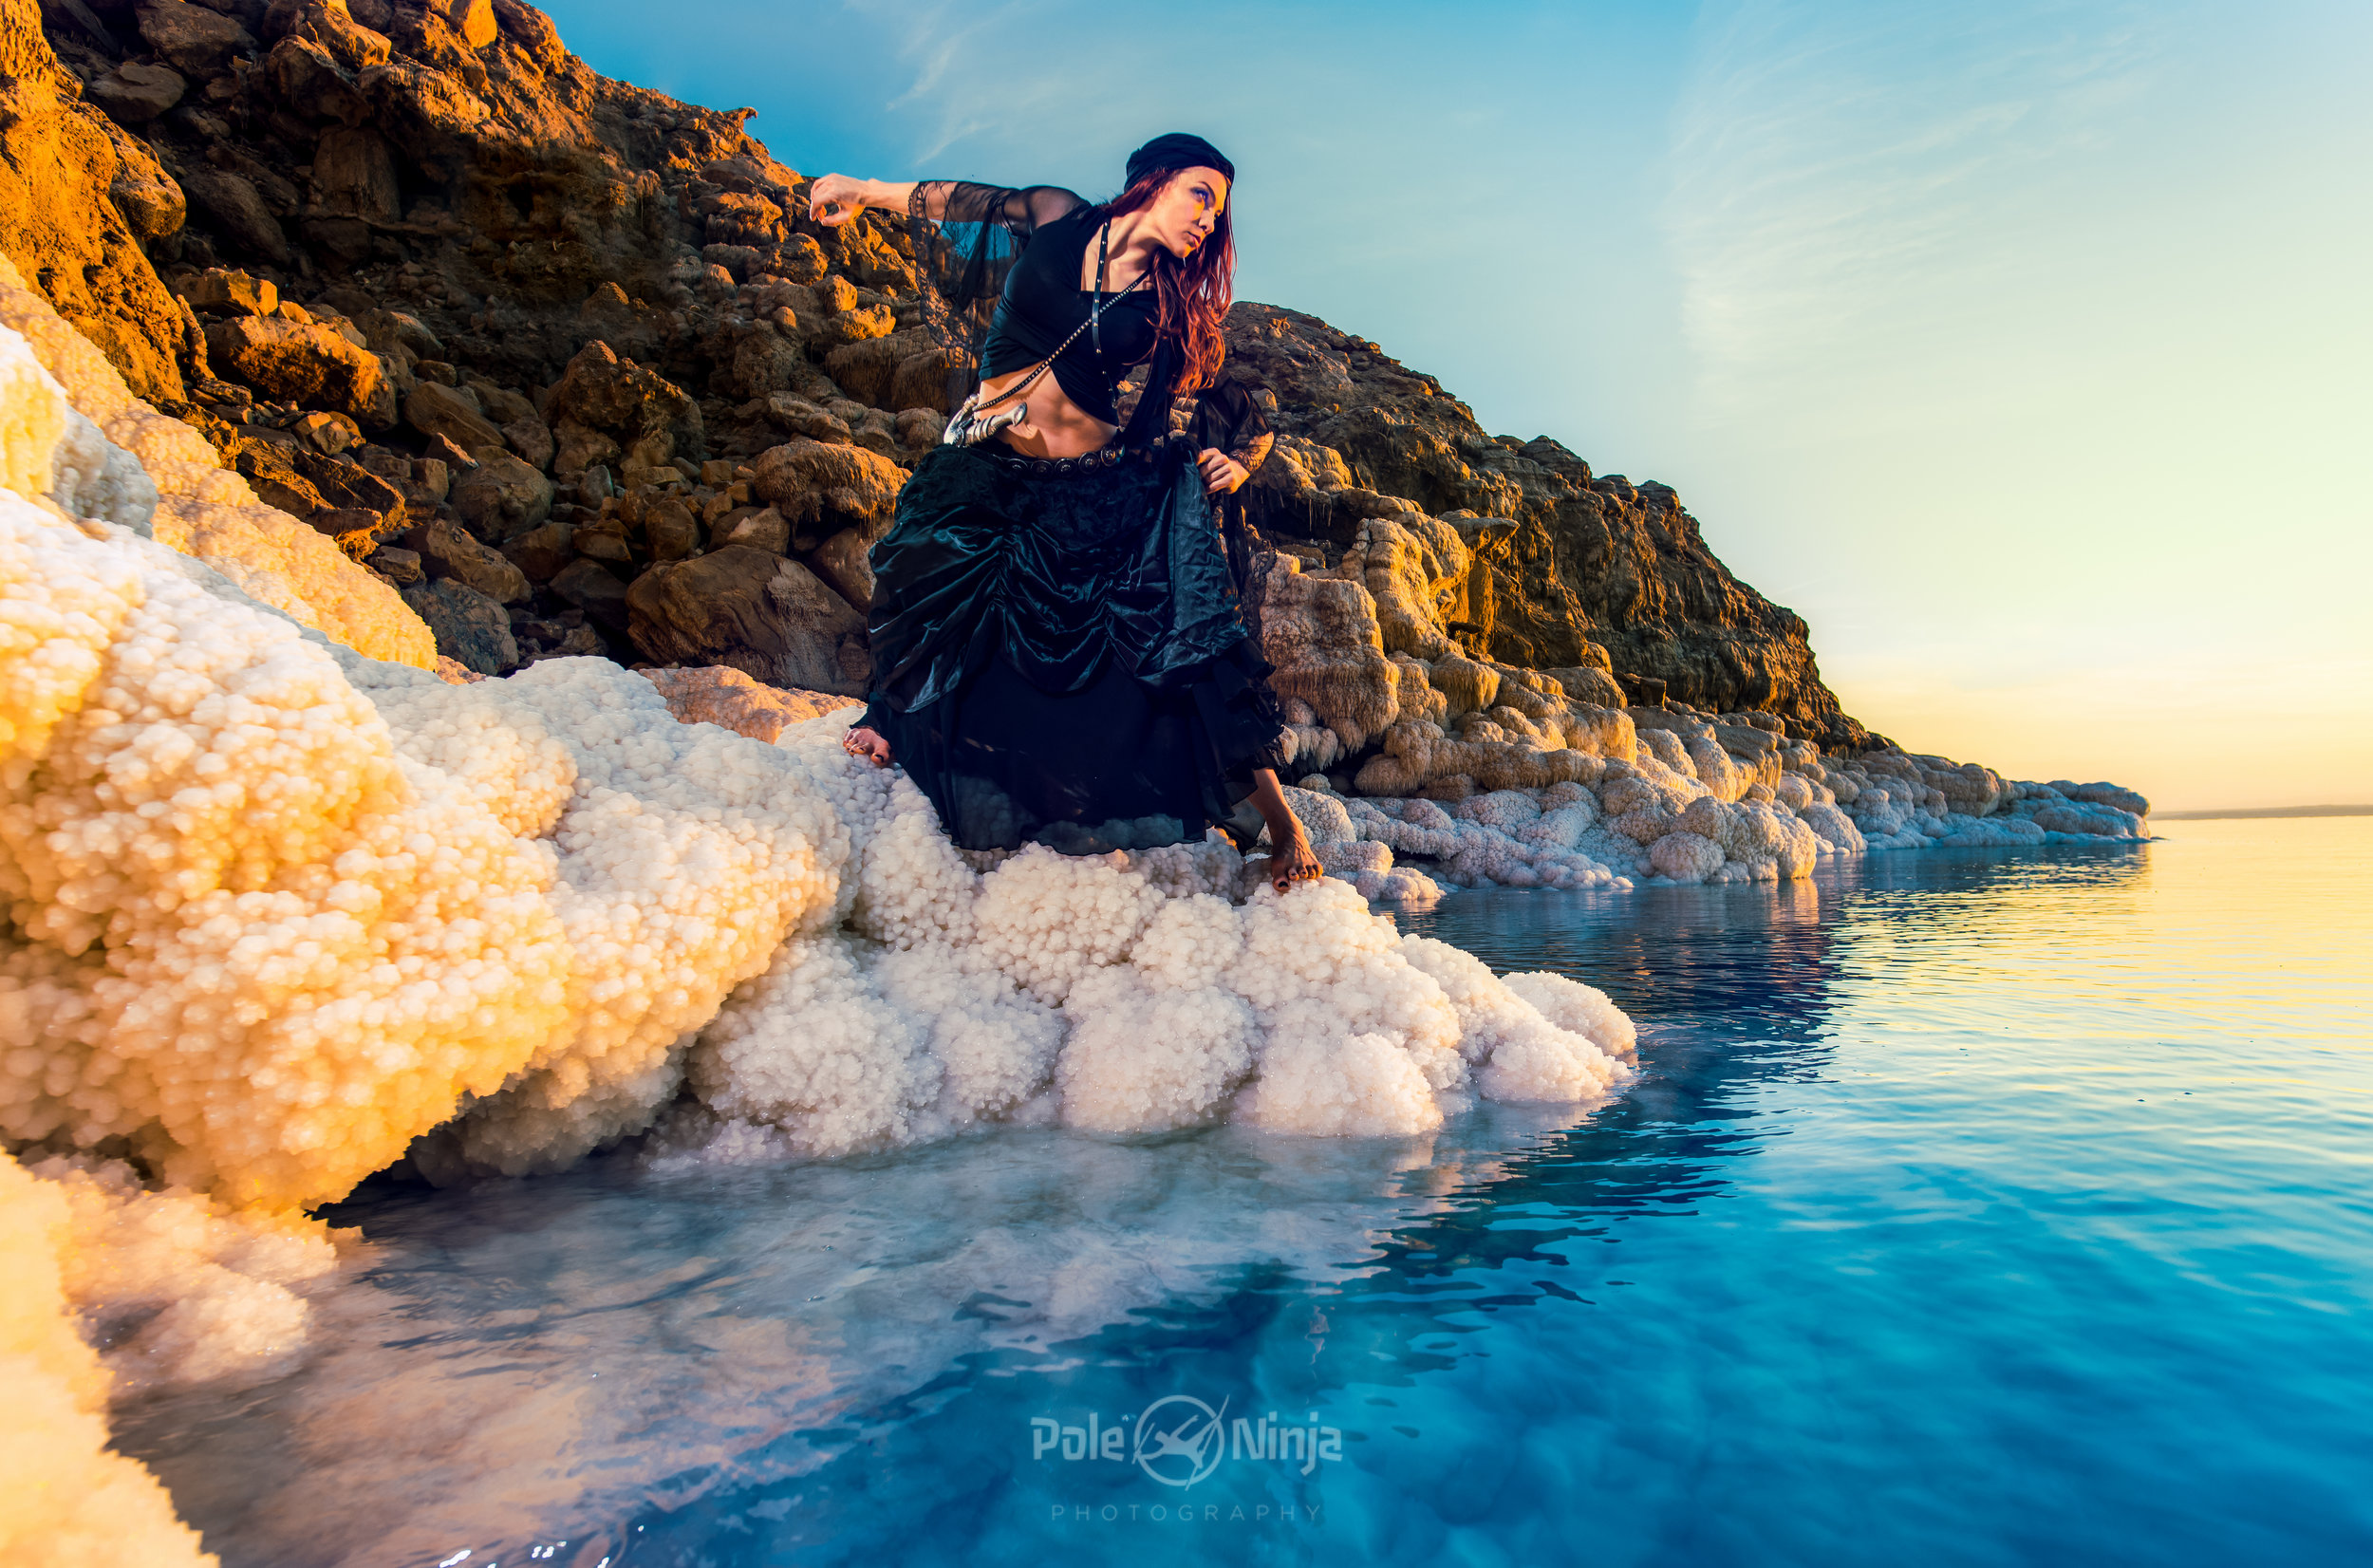 Marlo at the Dead Sea, Jordan